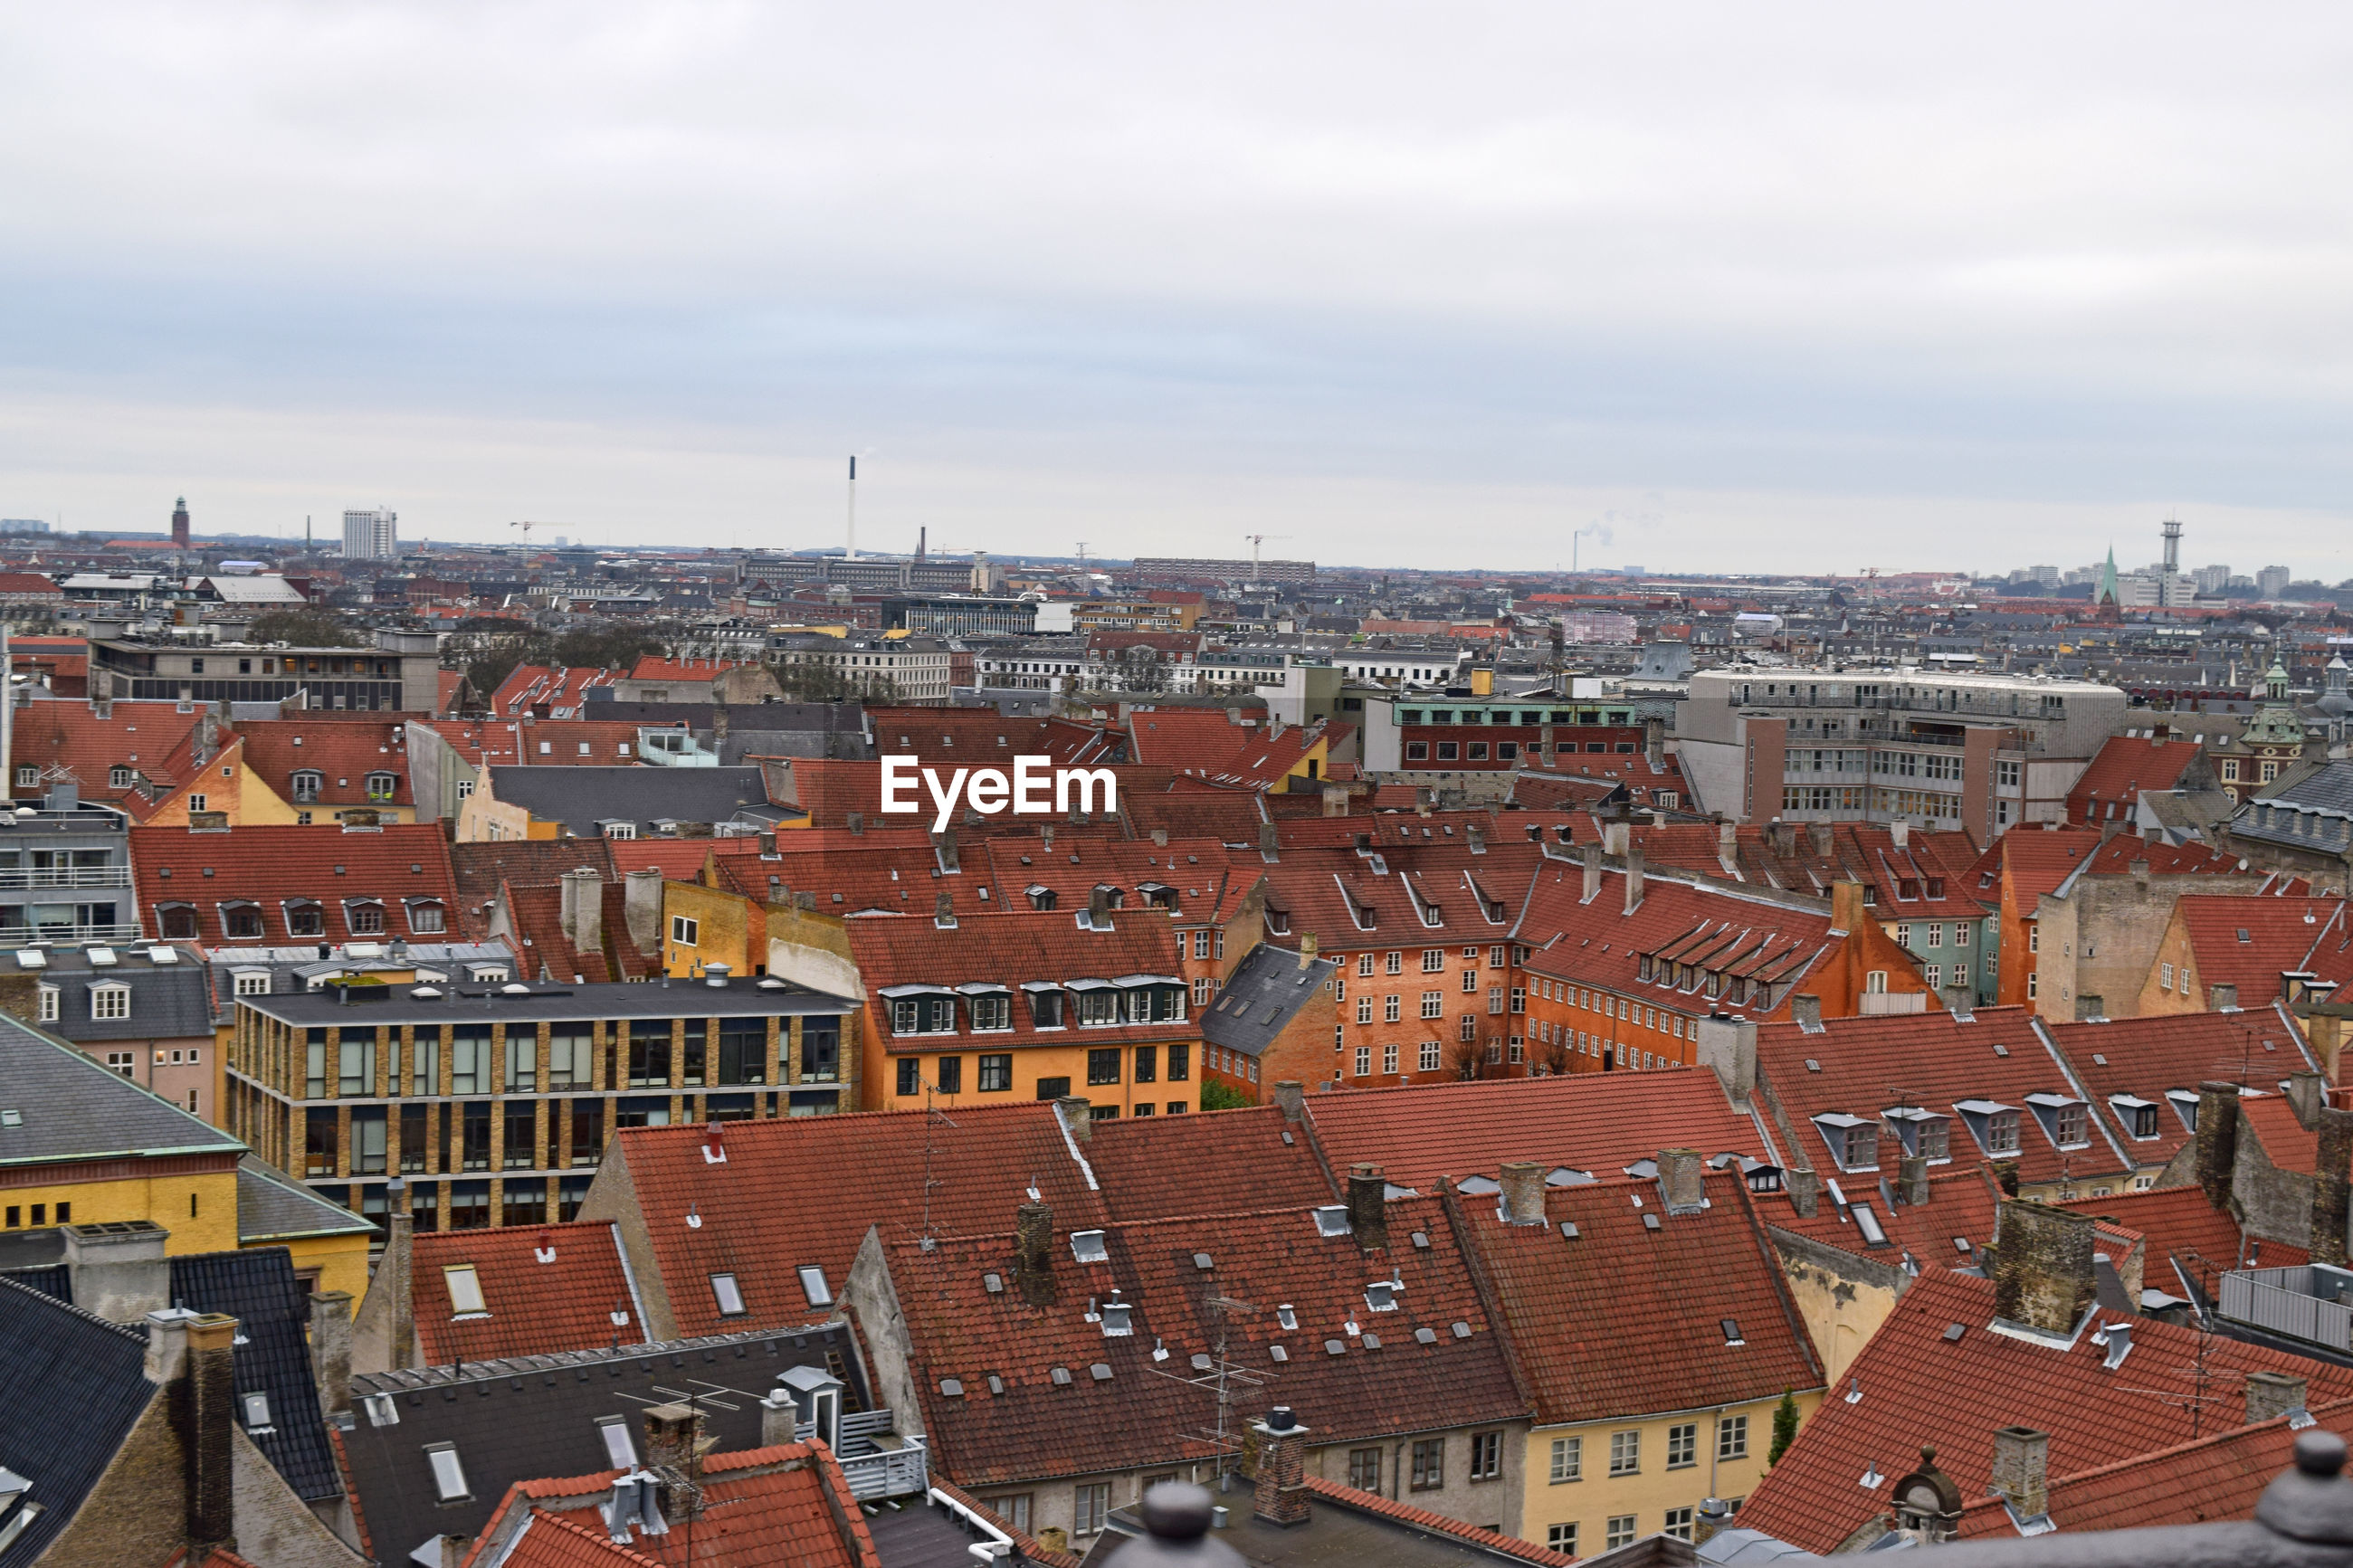 HIGH ANGLE VIEW OF HOUSES AGAINST SKY IN CITY